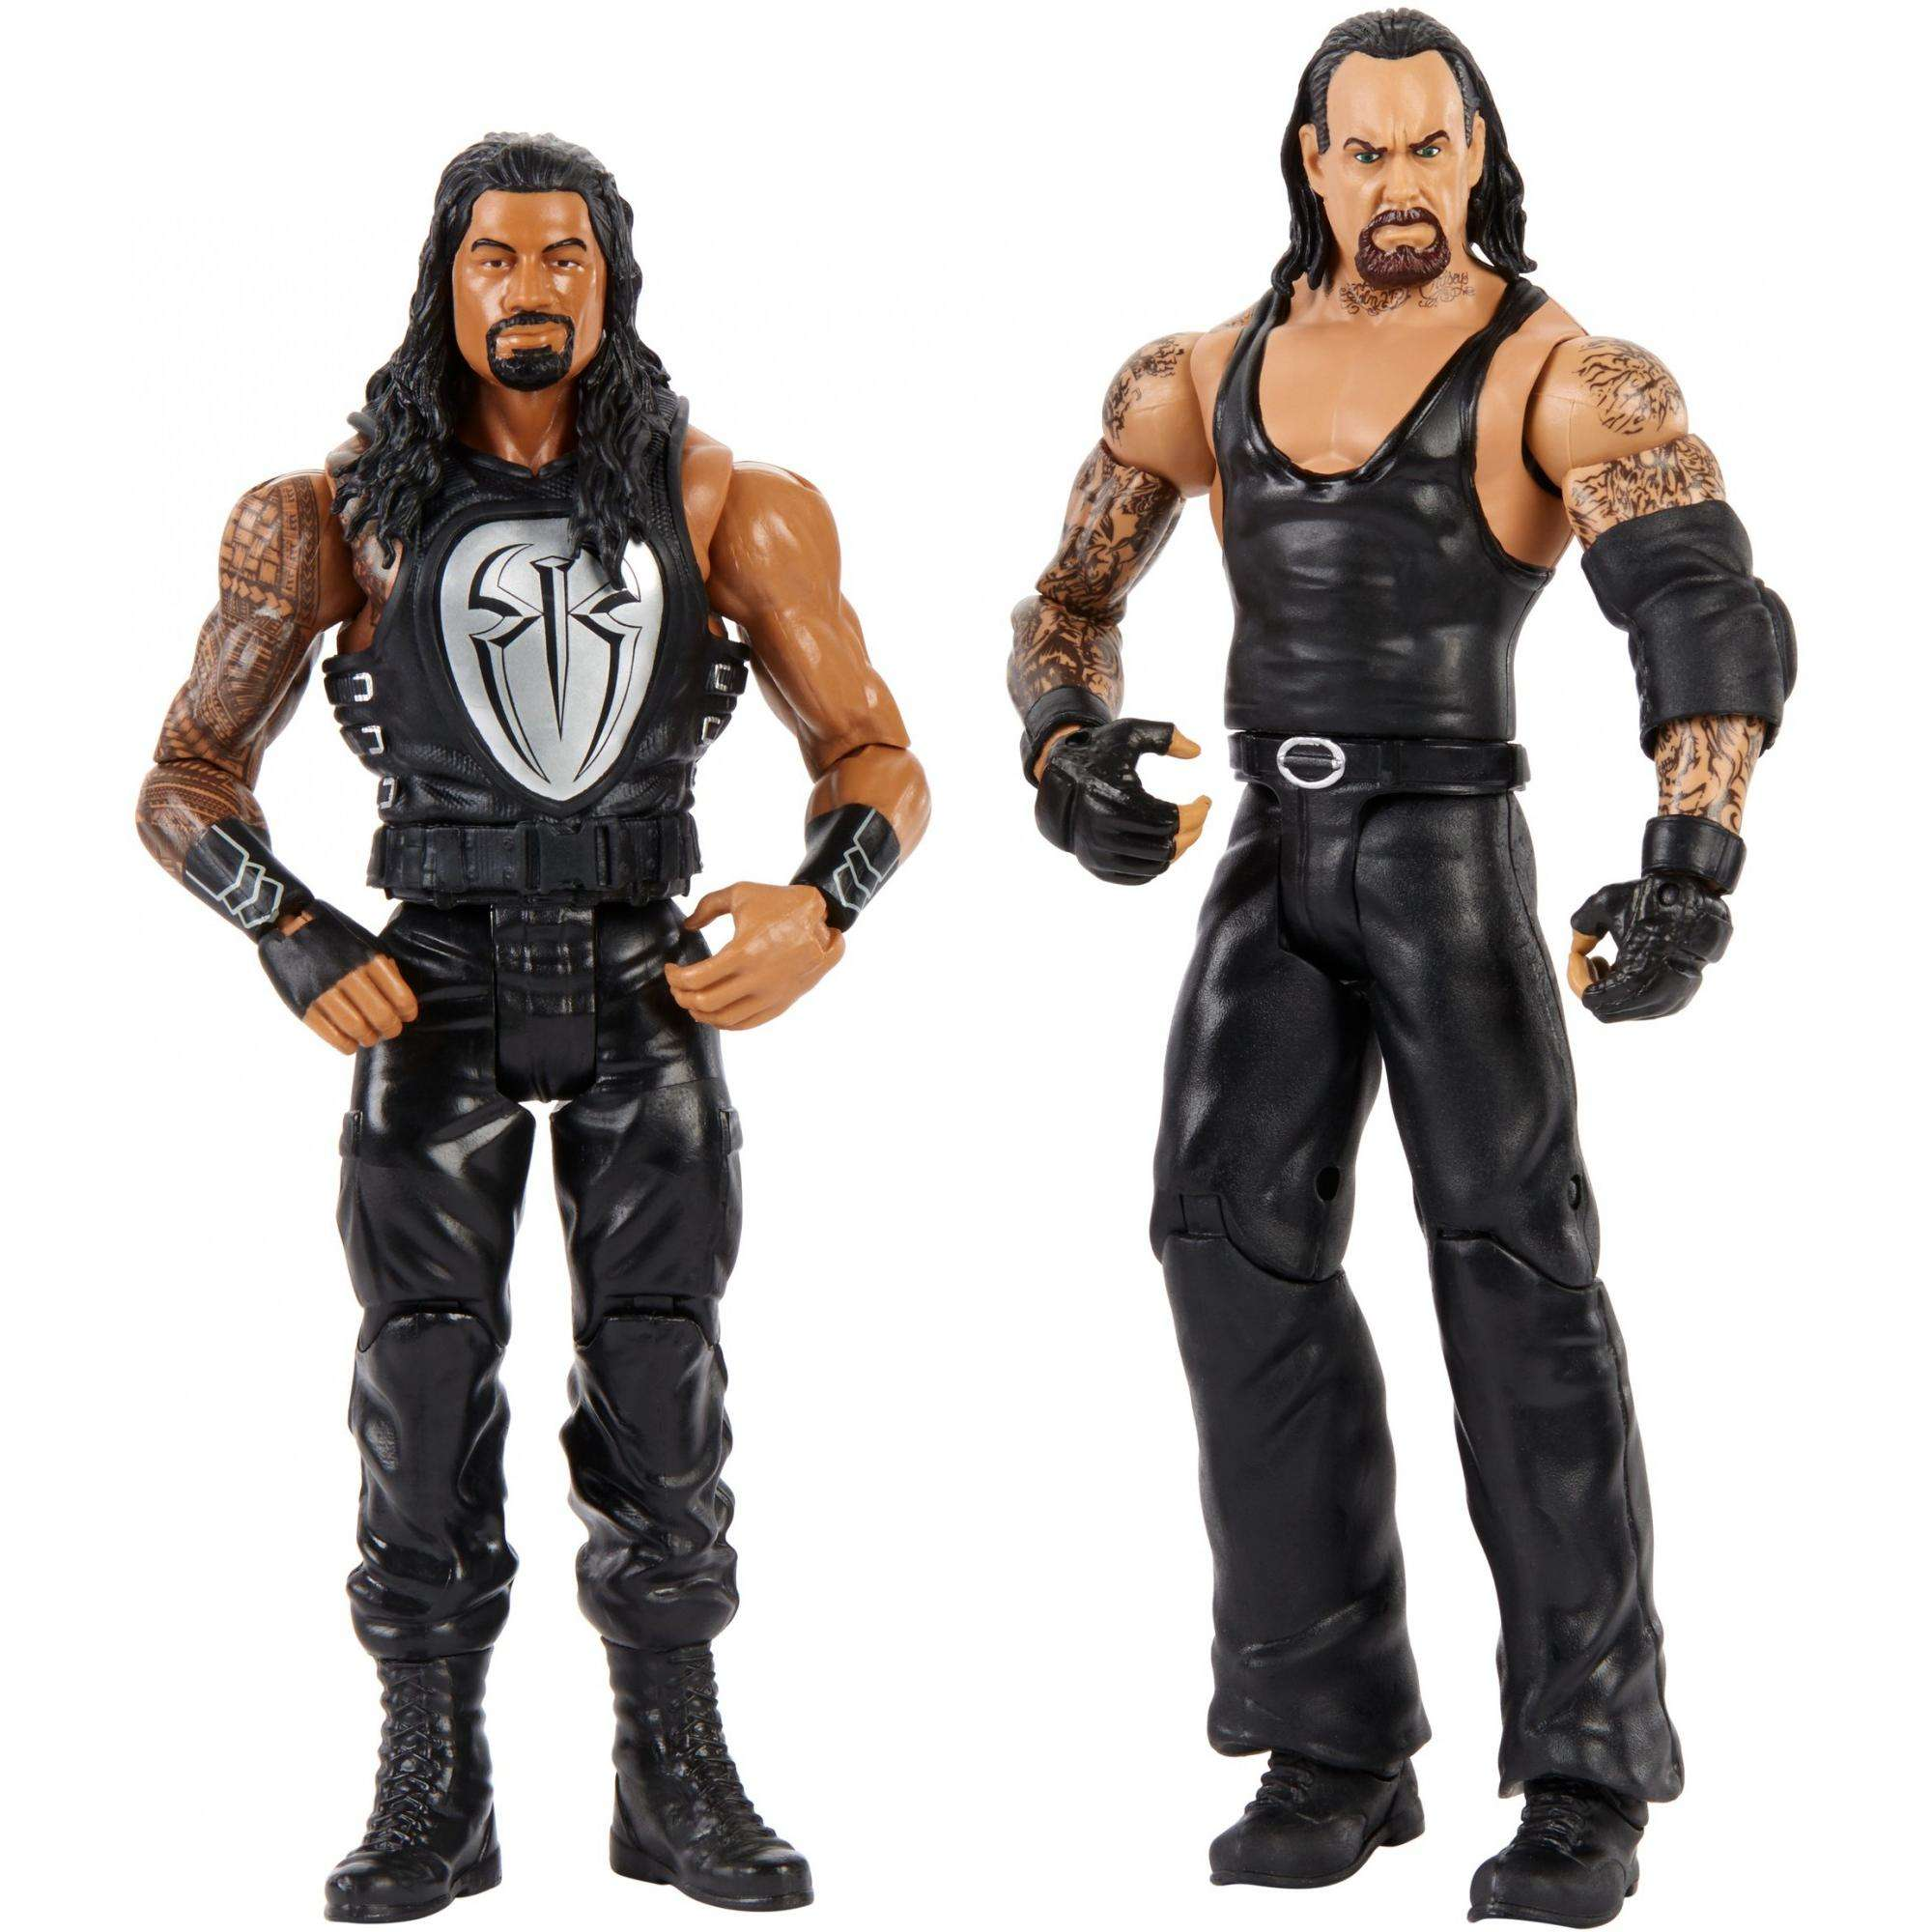 WWE Undertaker vs Roman Reigns 2-Pack by Mattel